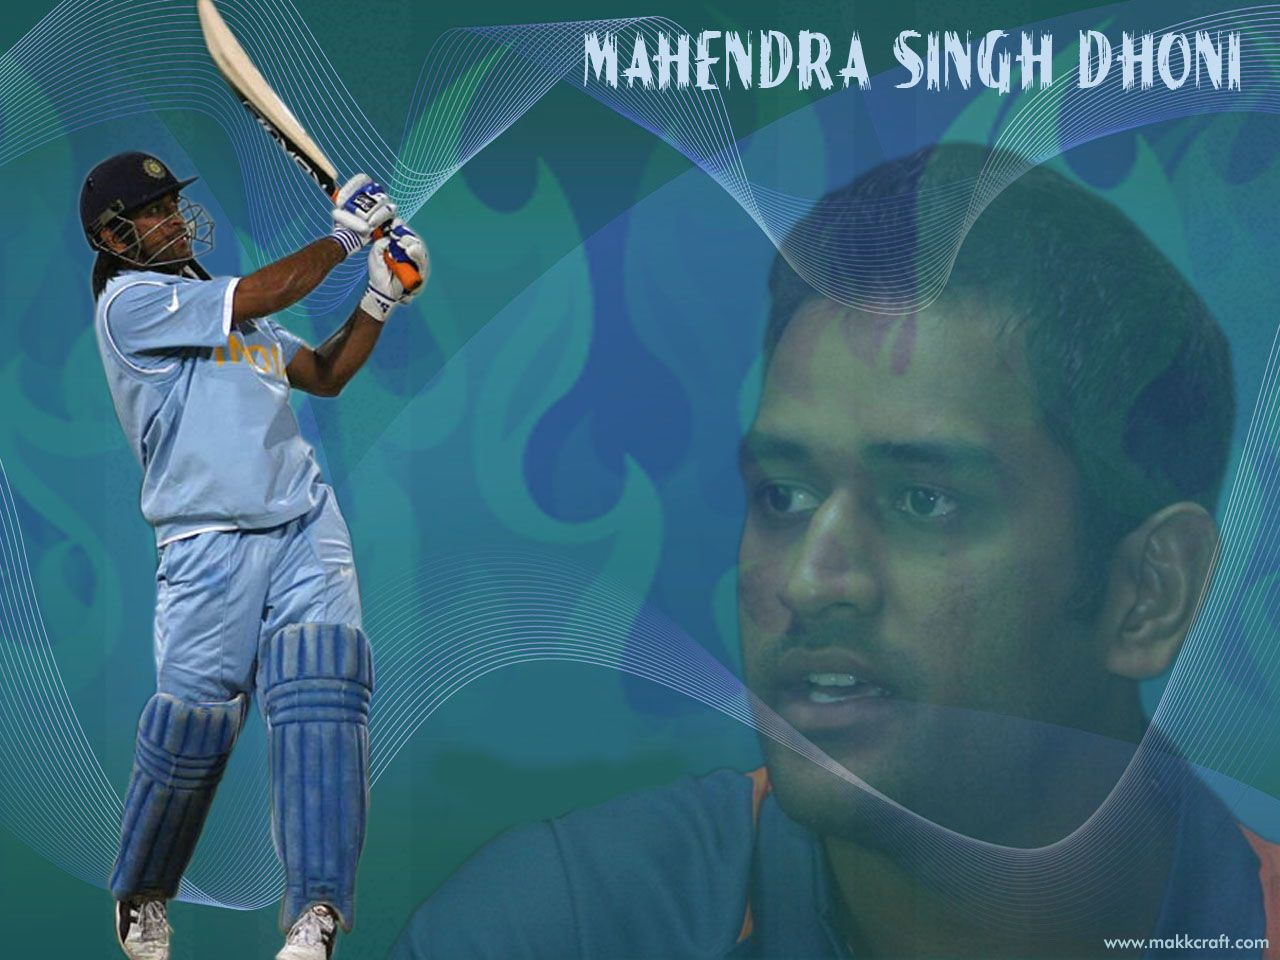 wallpaperswide wallpaperswide Latest Photo of Mahendra Singh Dhoni from Asia Cup 1280x960